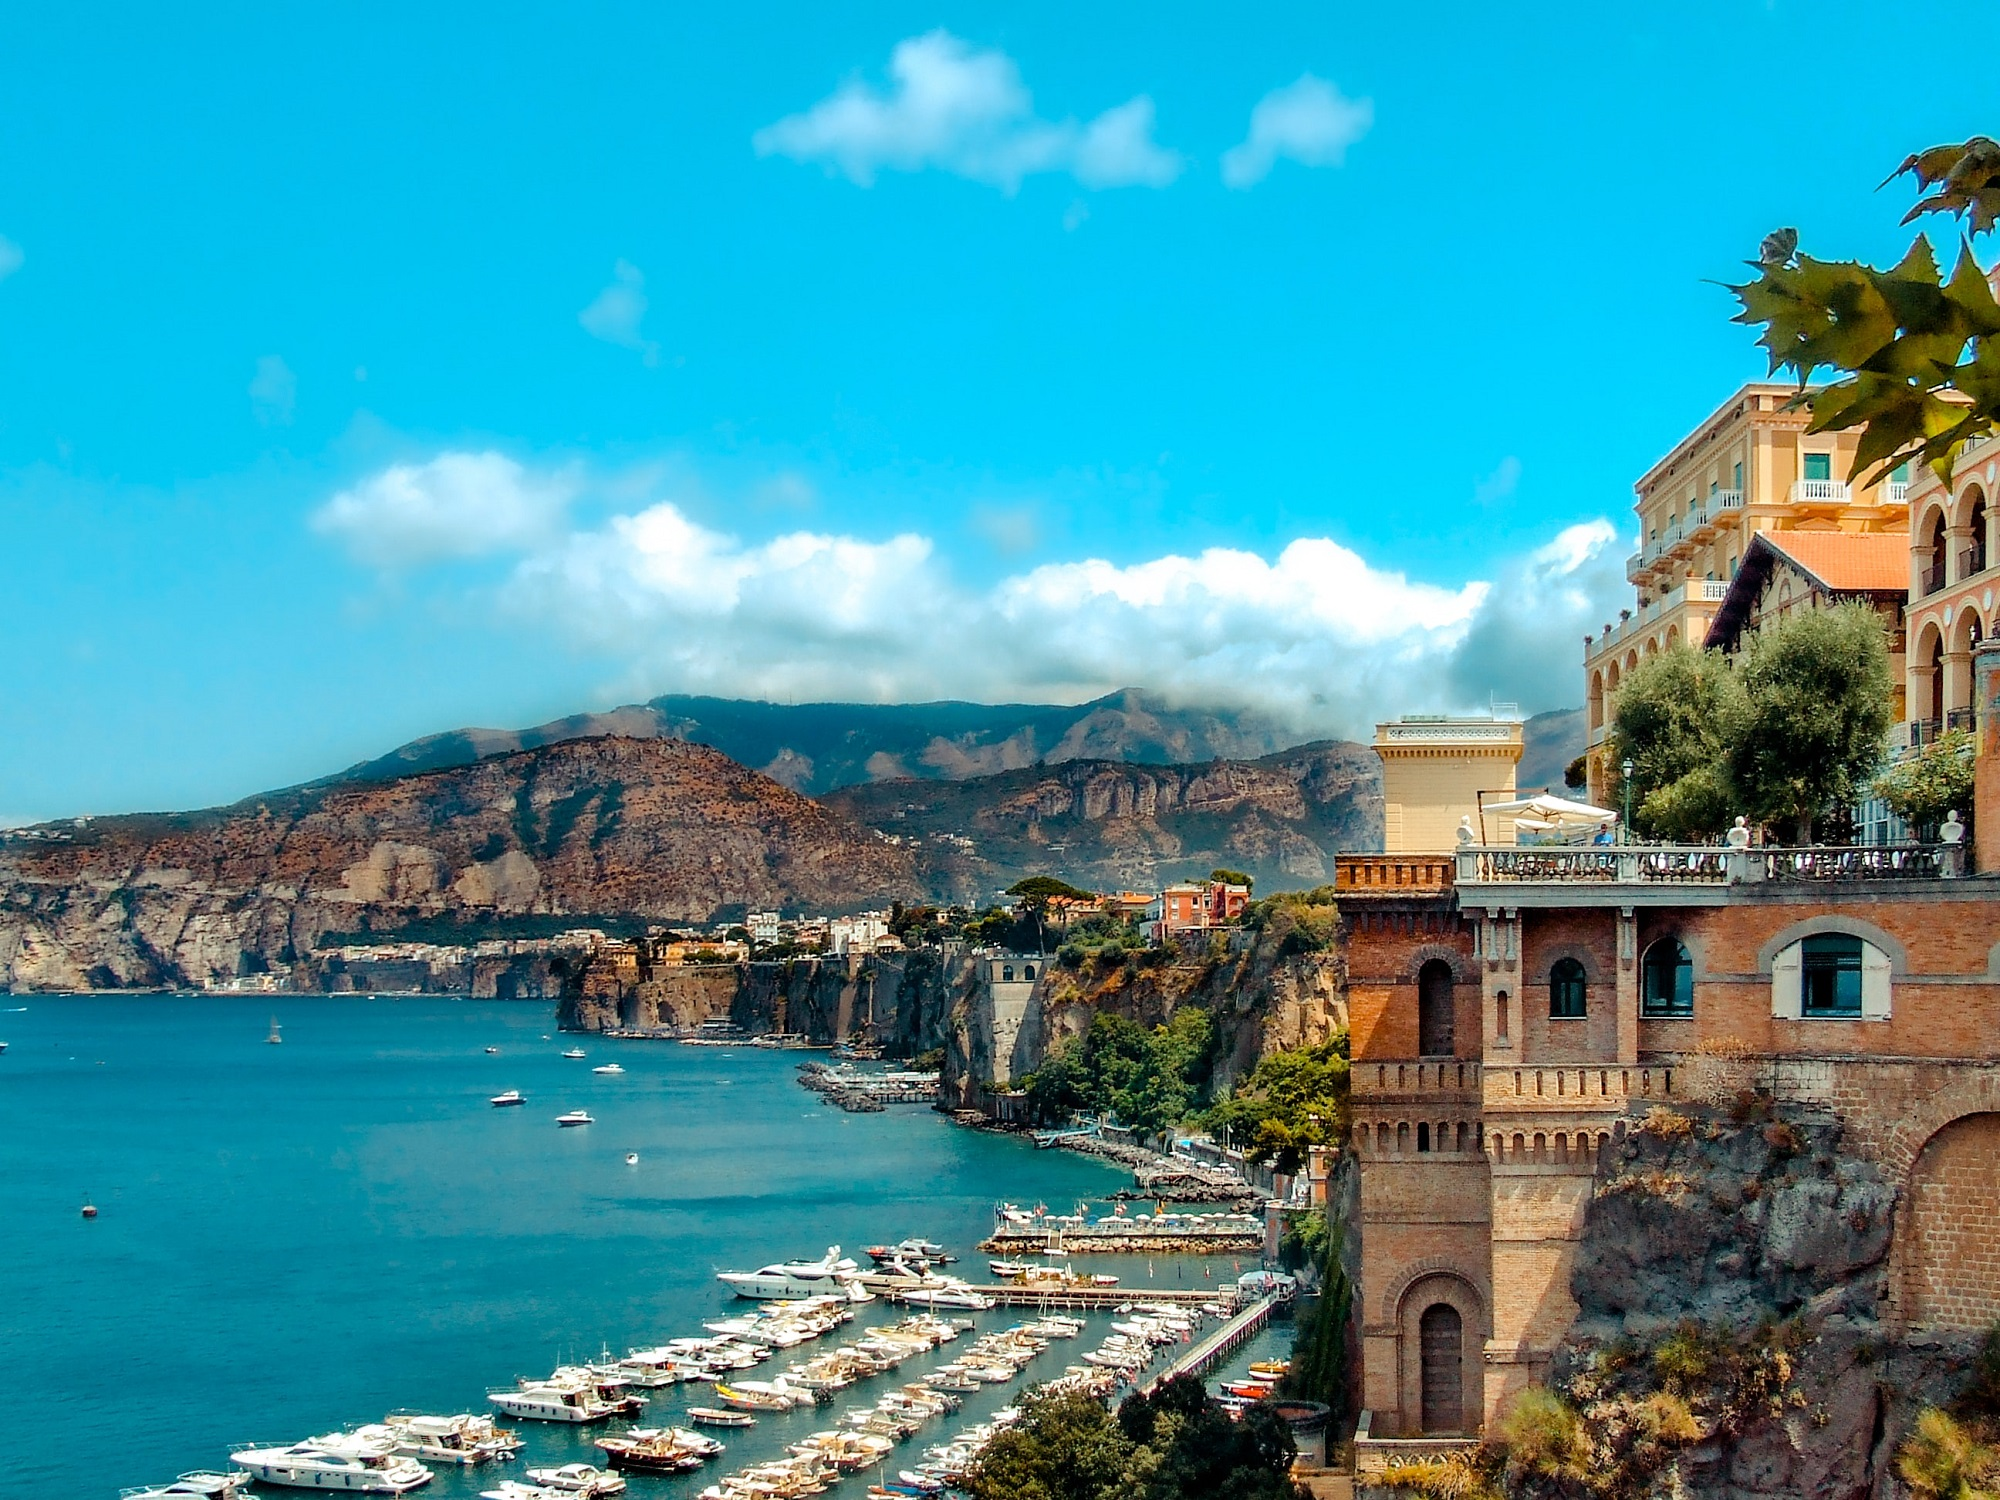 6 Things To Do in Capri On a Budget